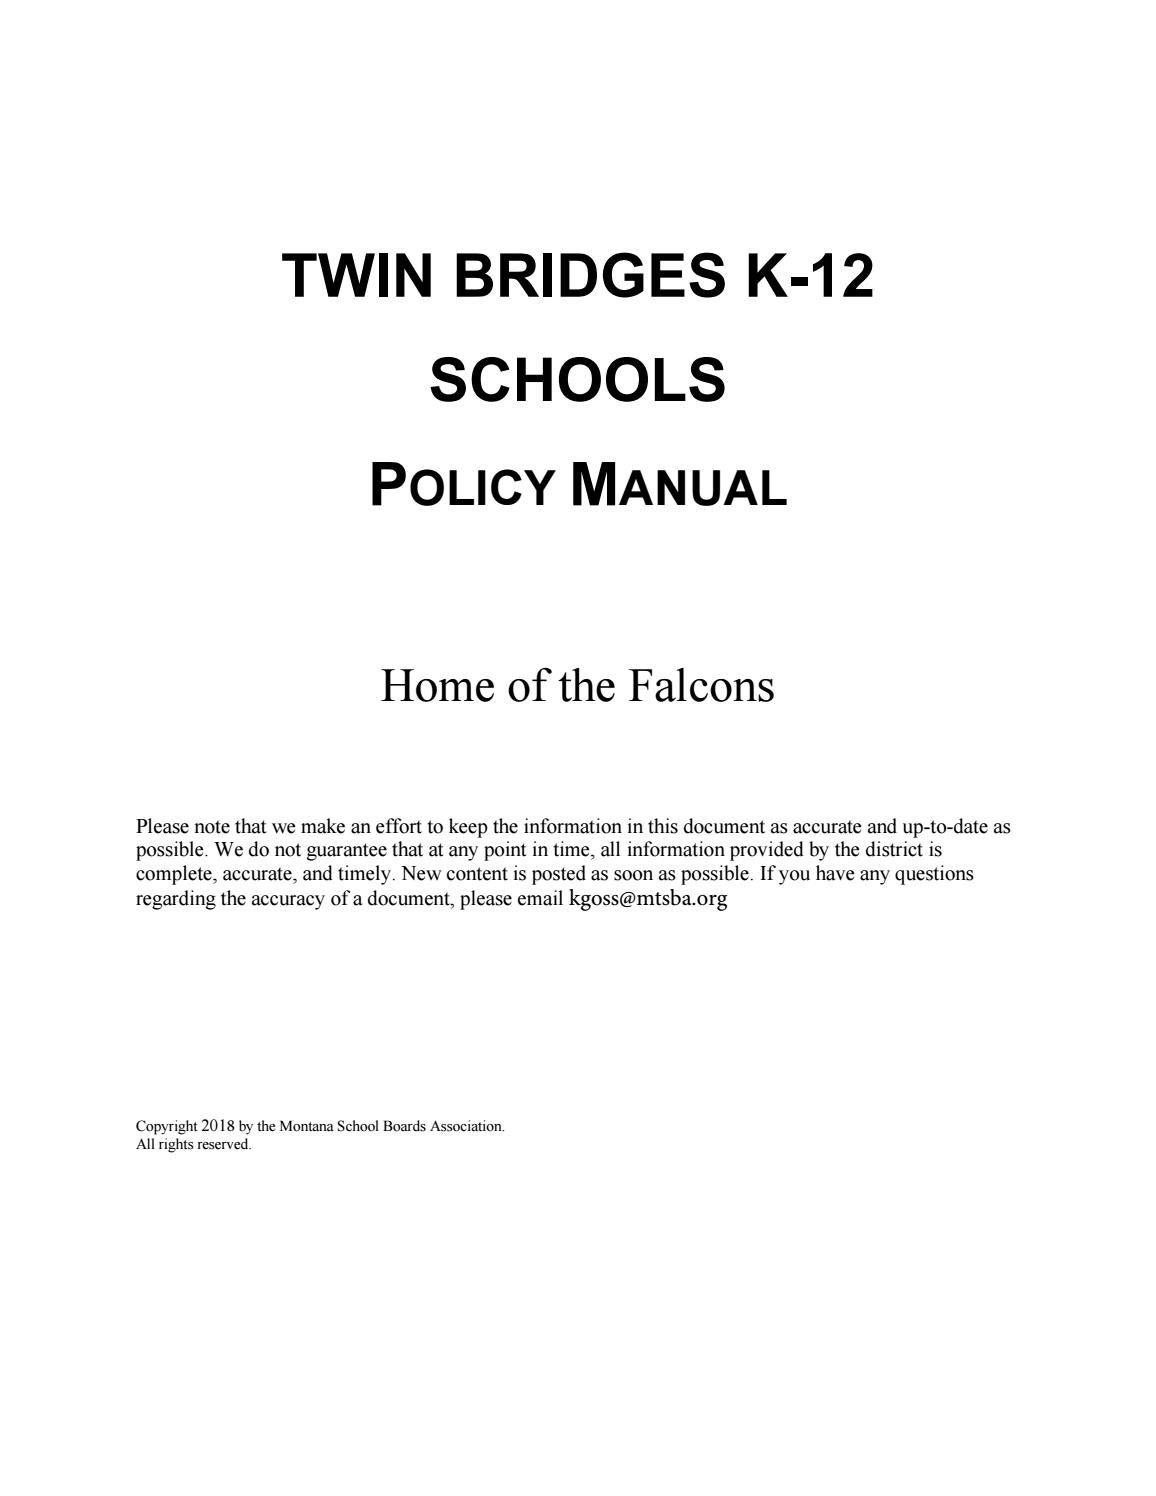 Twin Bridges K-12 Schools Policy Manual by Montana School Boards